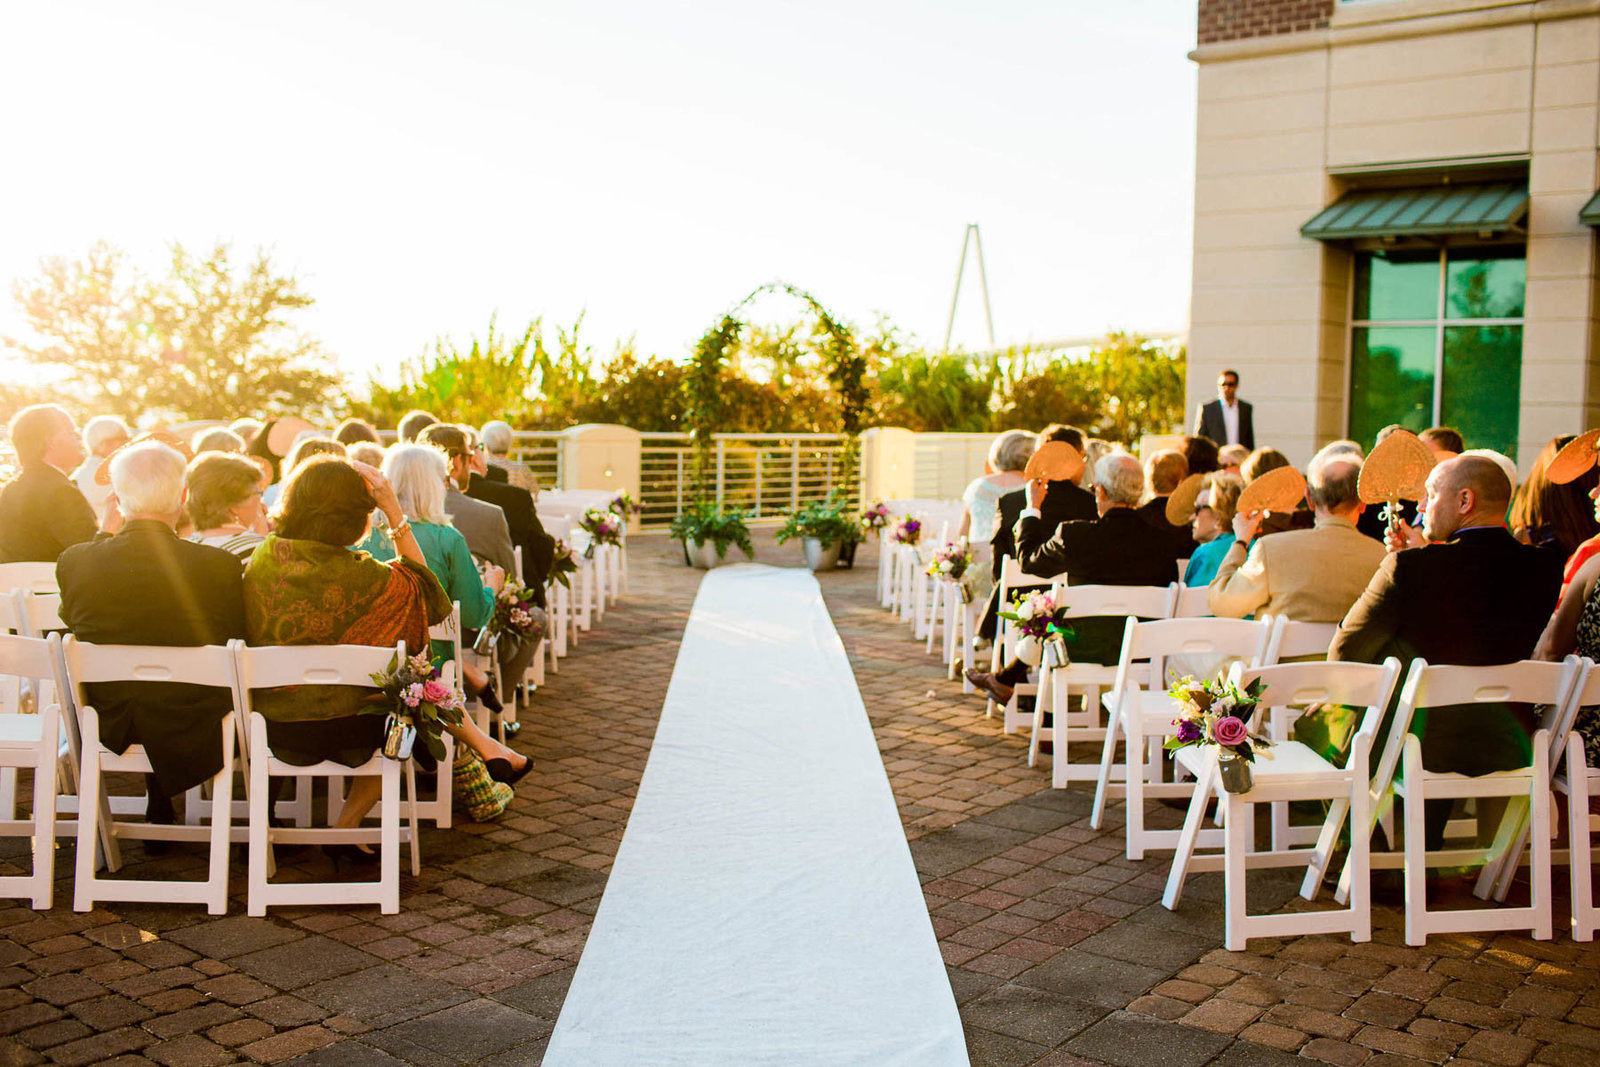 Ivy covered arch are at center of the aisle, Harborside East, Charleston Wedding Photography.